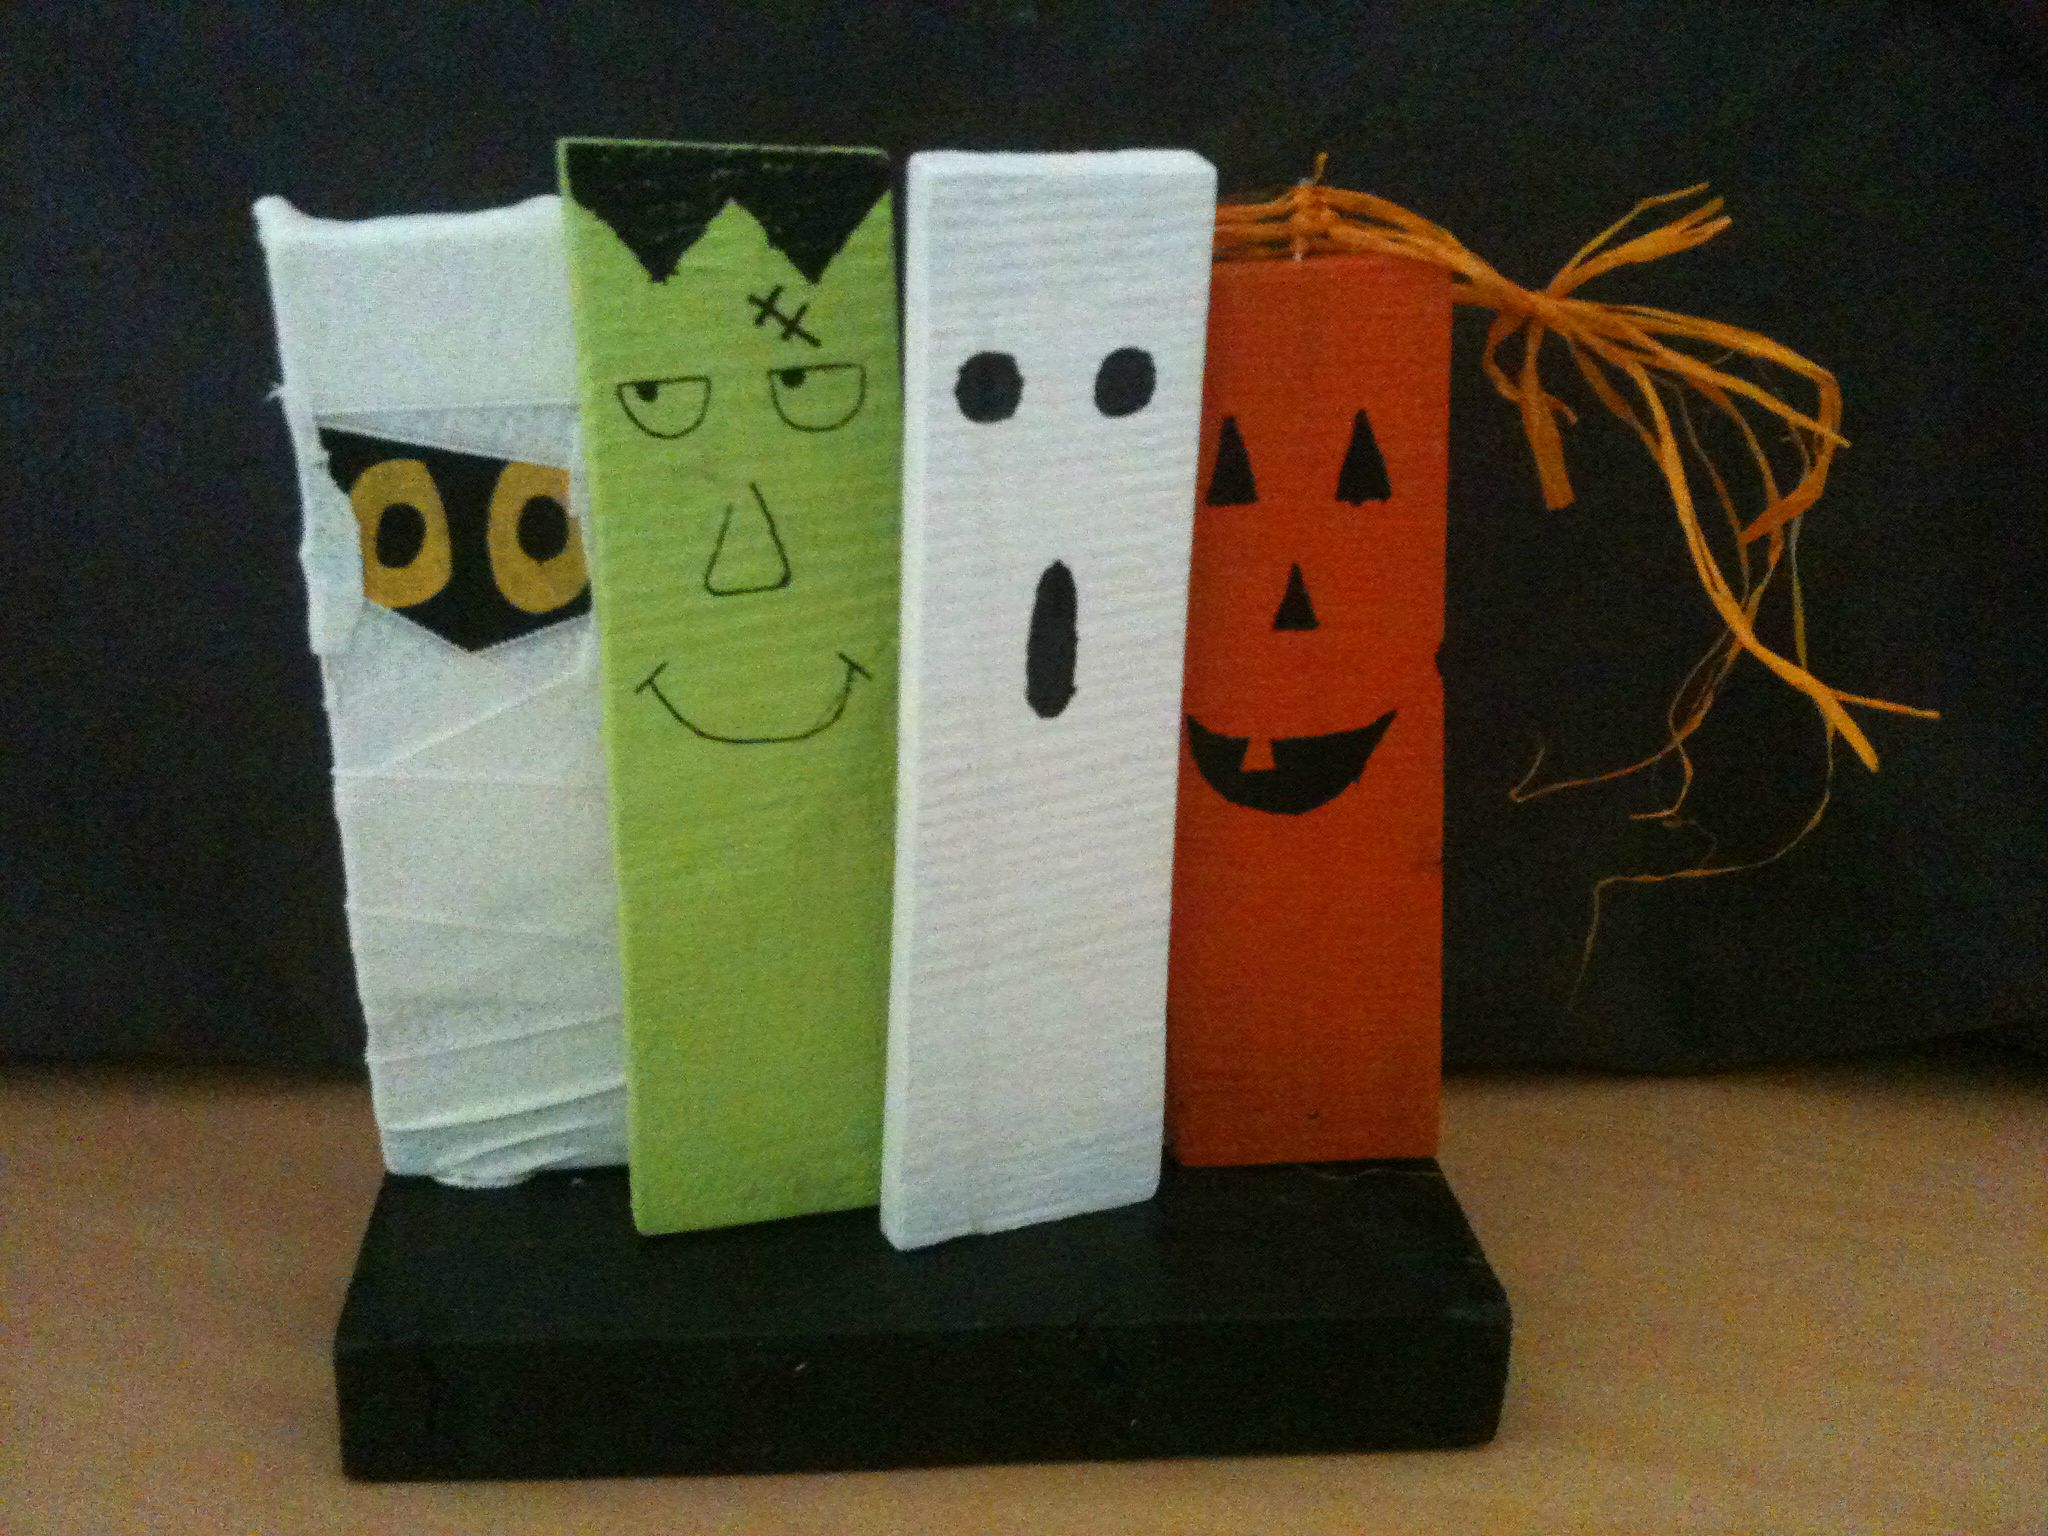 D co halloween photo de brico d co bois papier - Maison decoree pour halloween ...